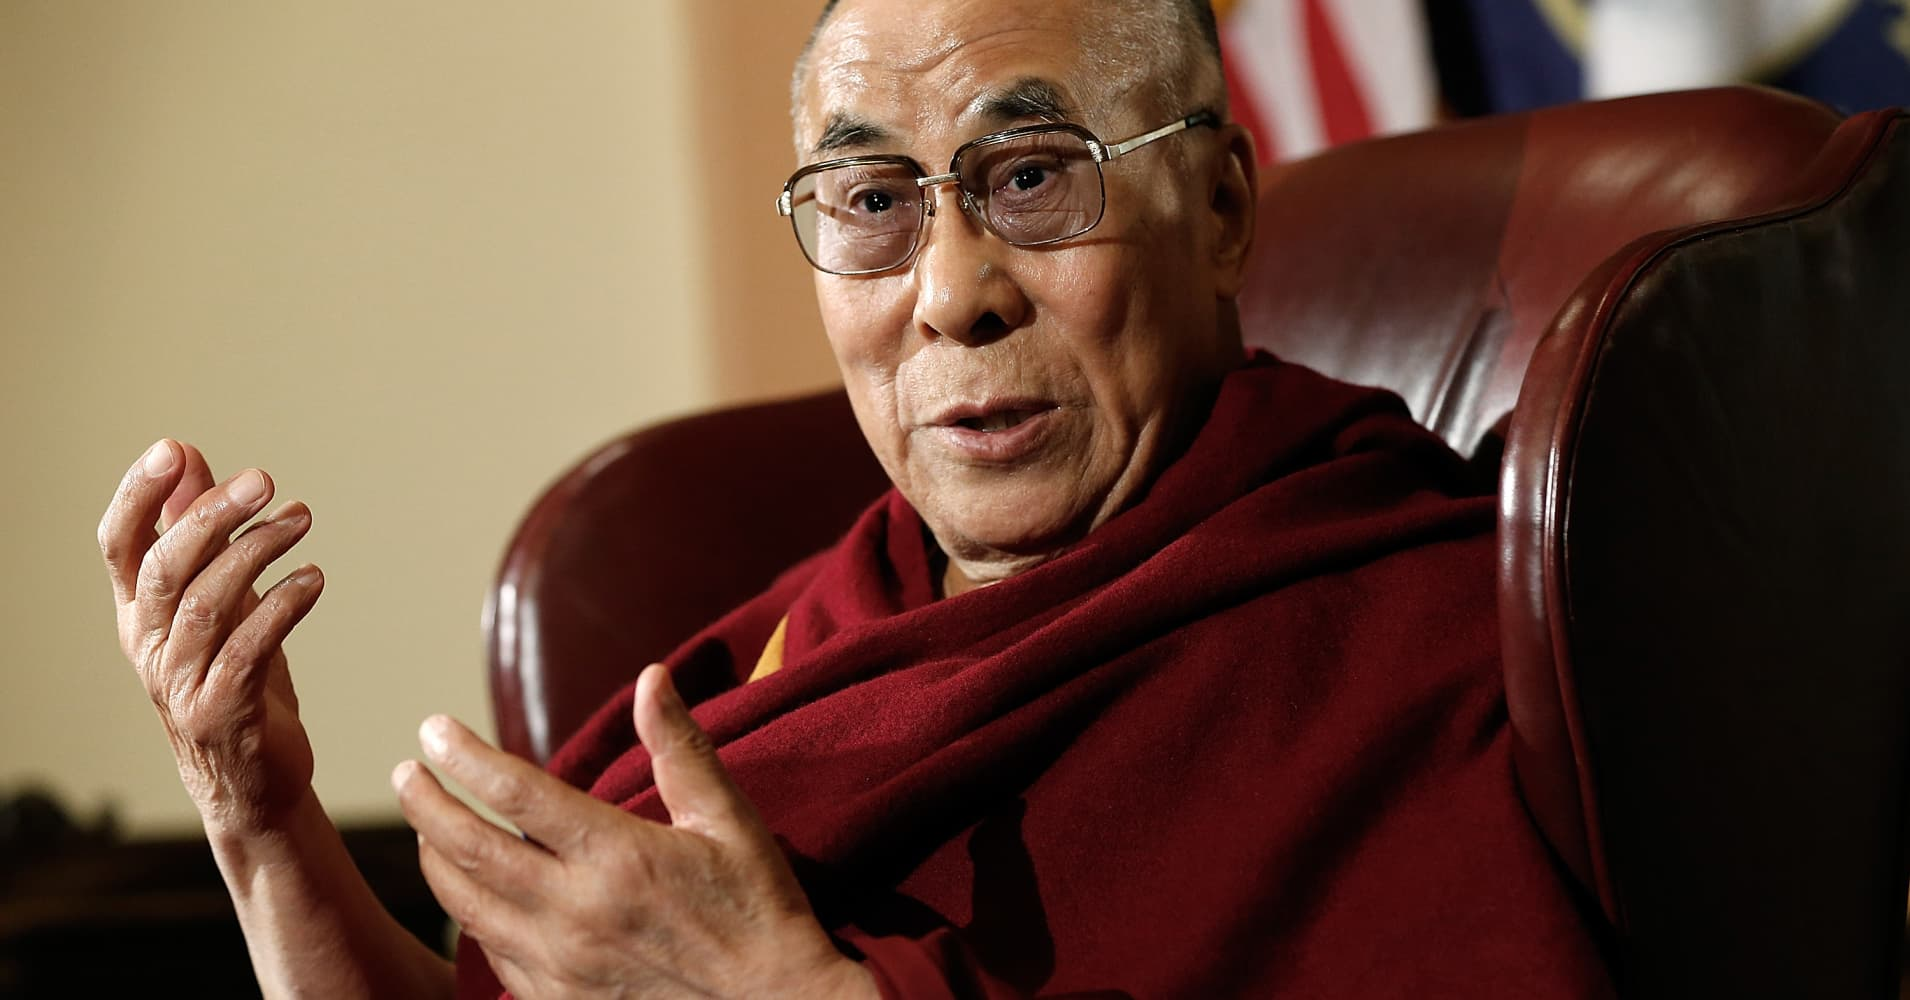 Mercedes-Benz apologizes to Chinese for inspirational Dalai Lama quote